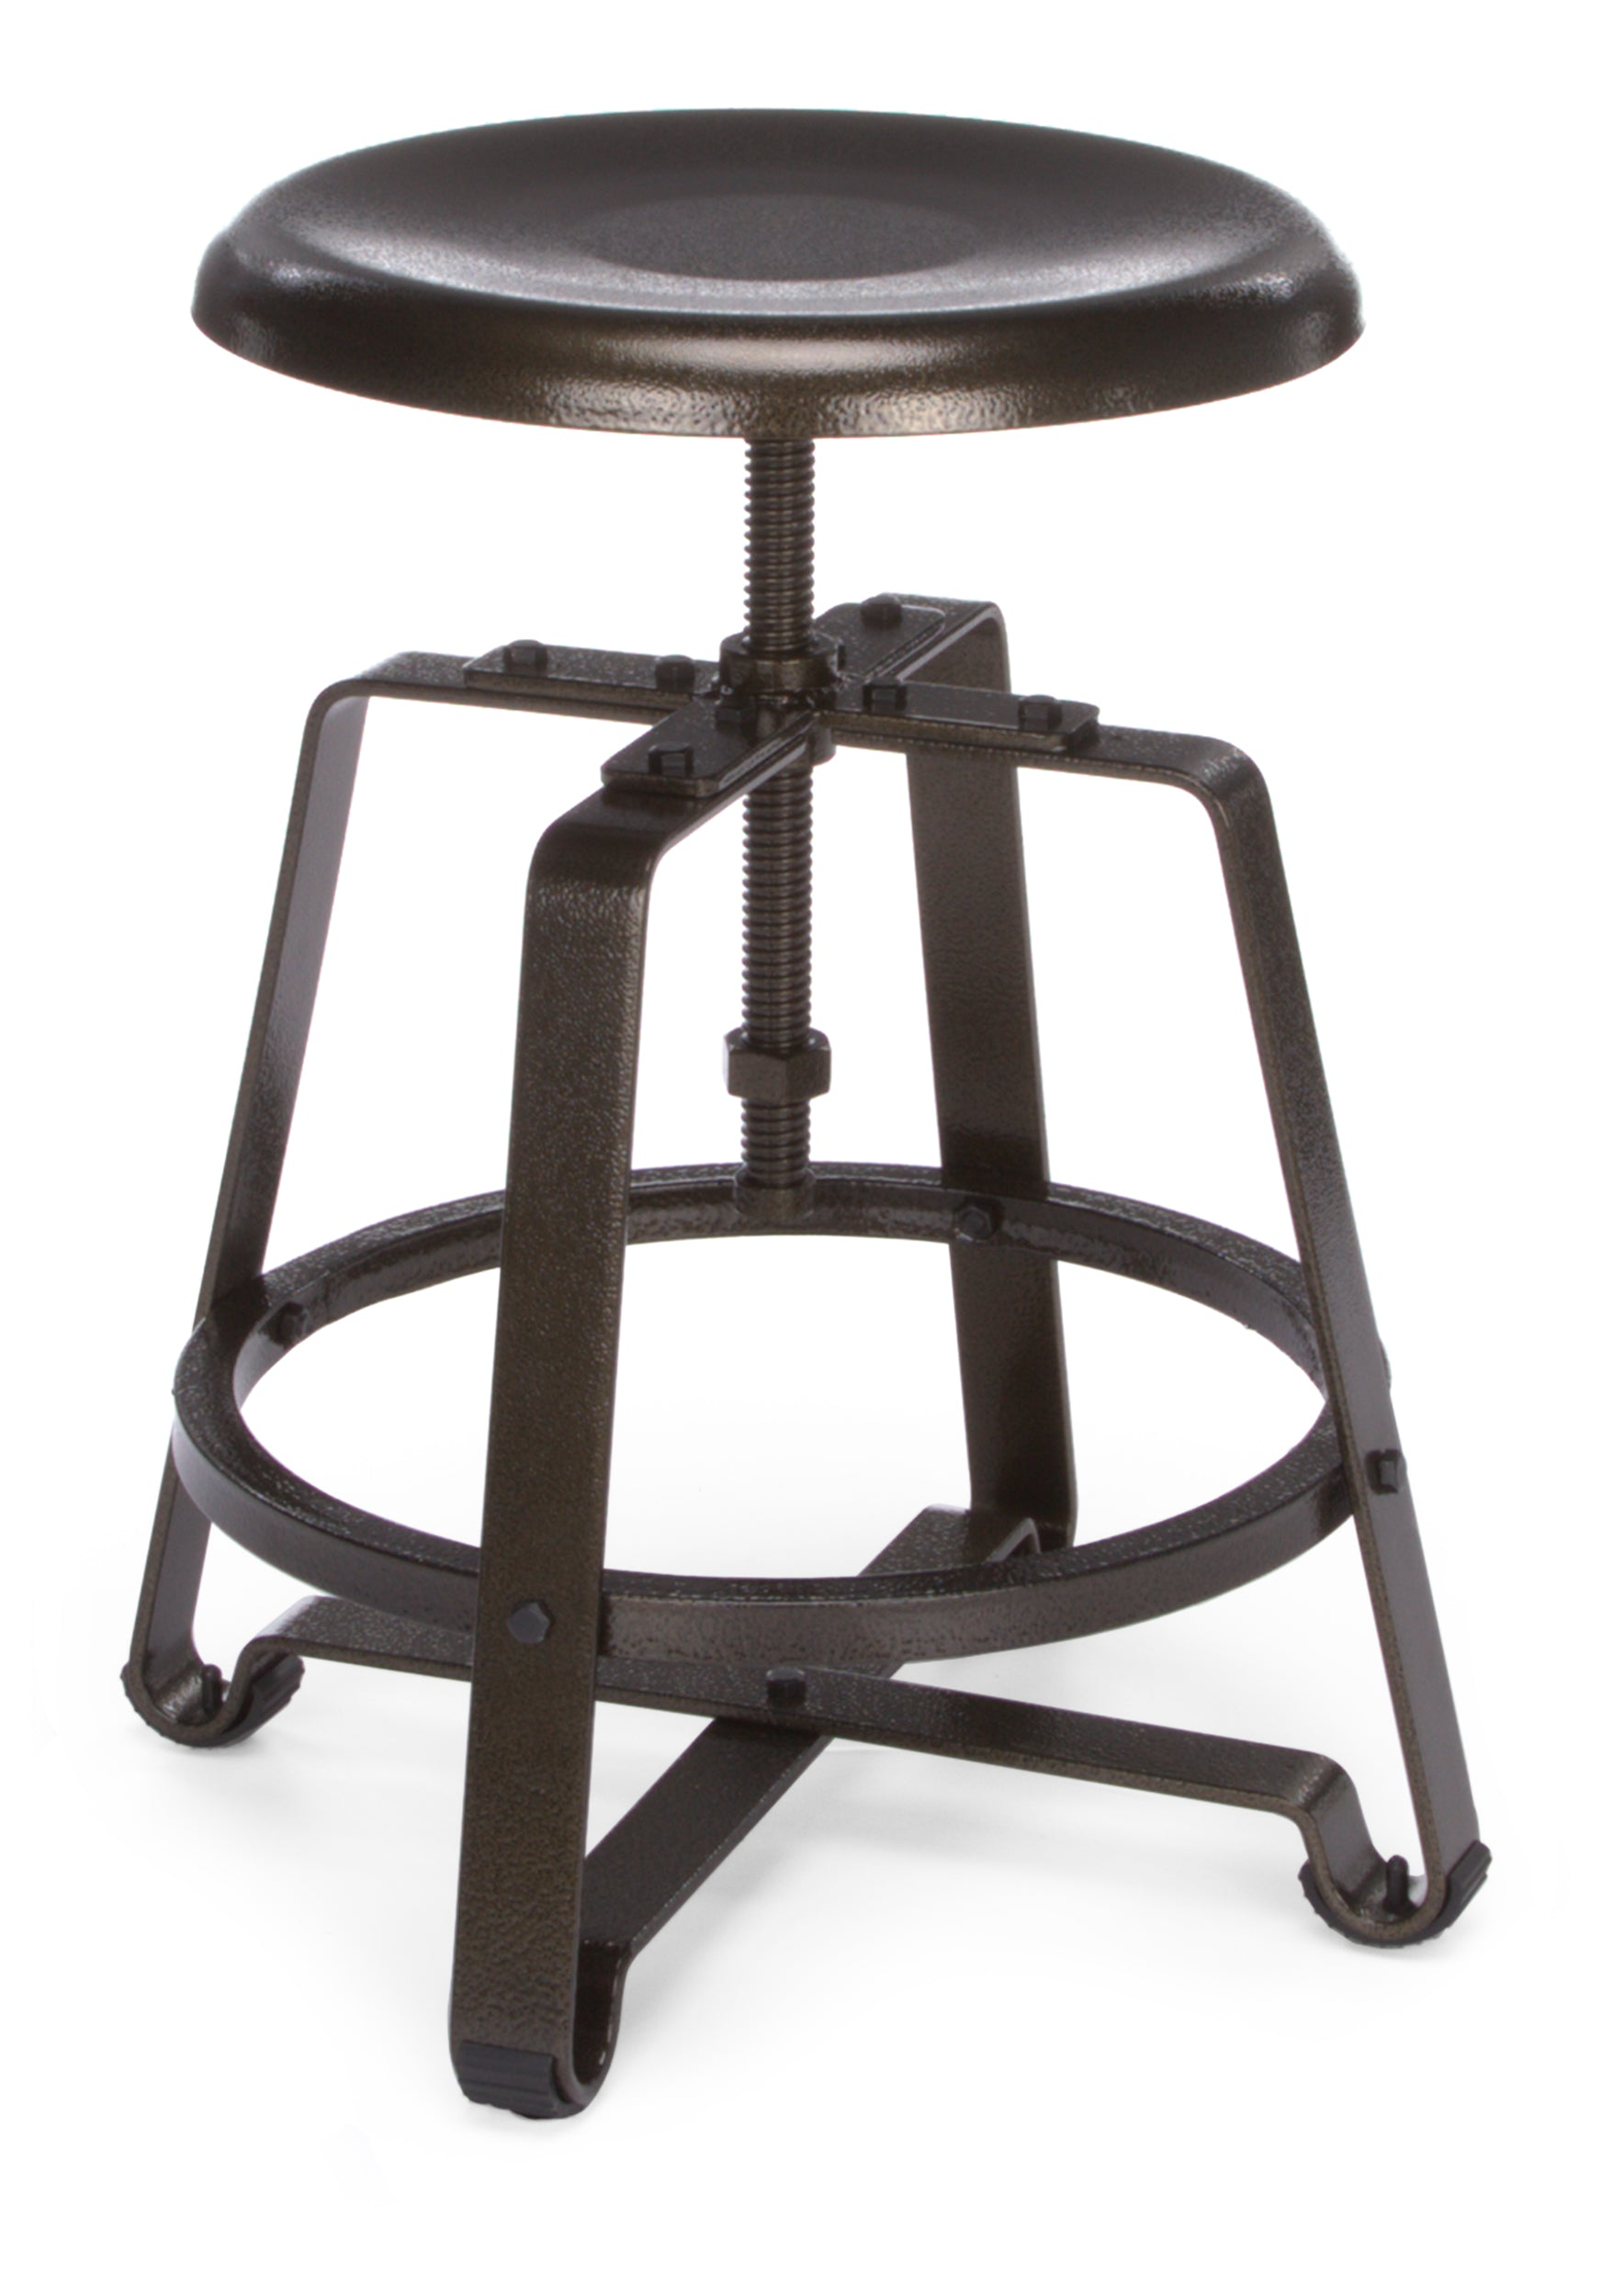 Ofminc Model 921-MTL Endure Series Small Metal Stool